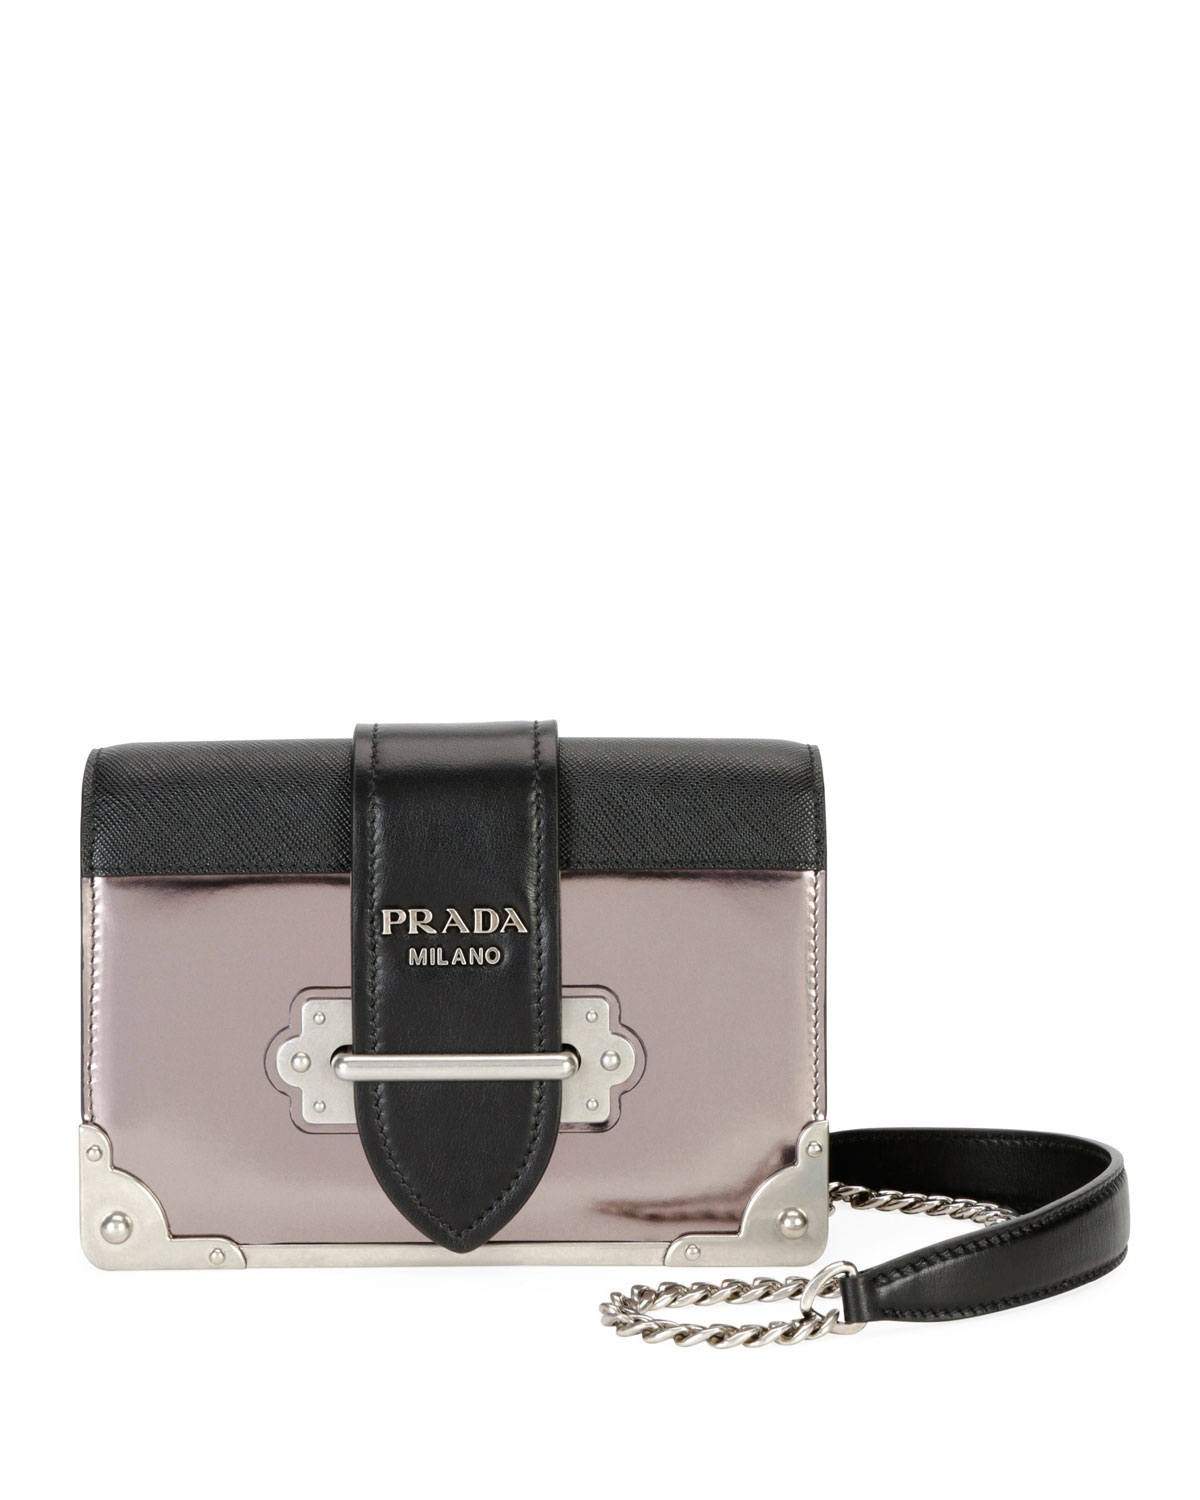 19a13f9cfd Prada Cahier Small Metallic Crossbody Bag